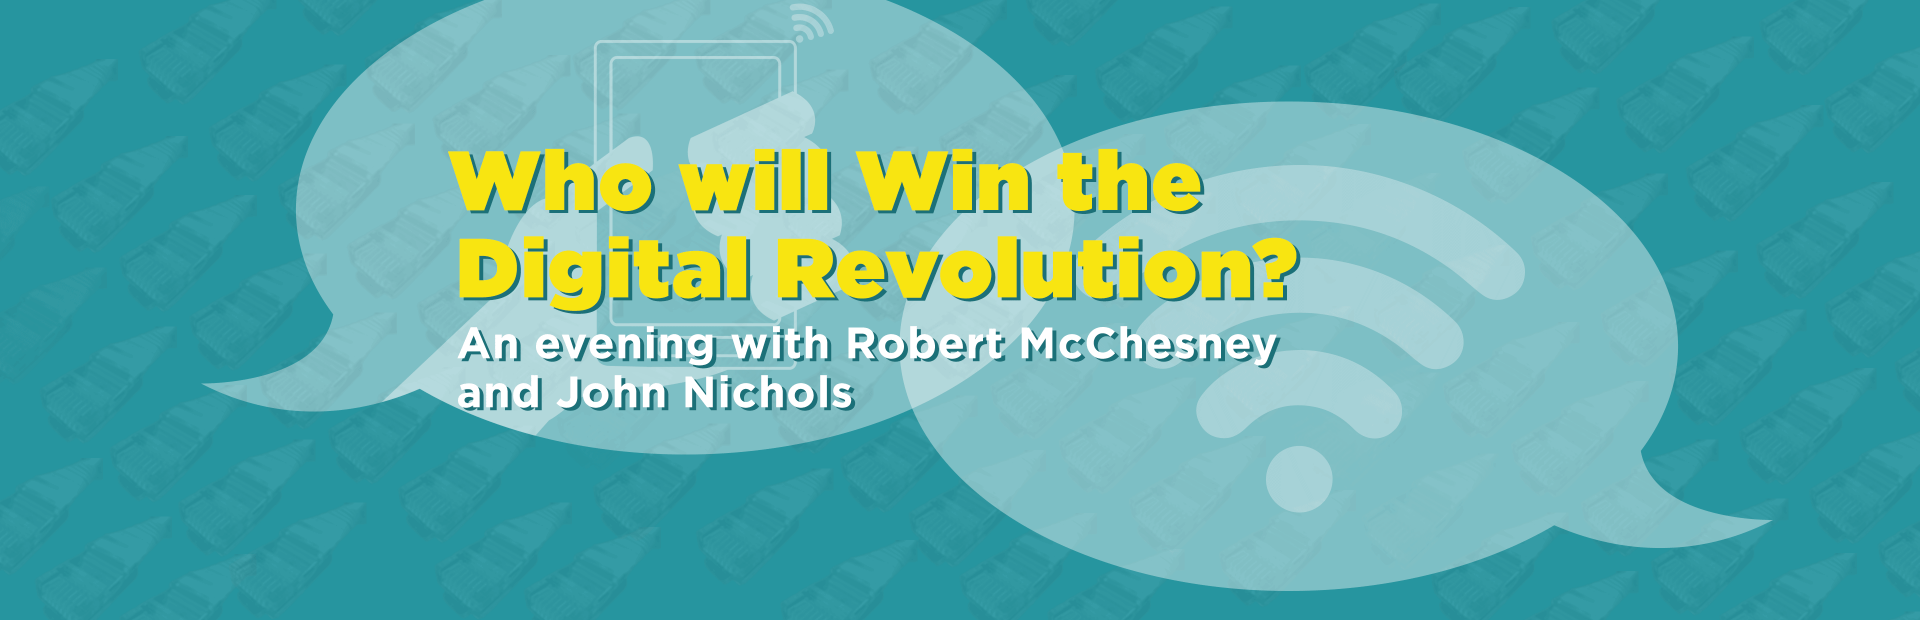 Who will win the Digital Revolution?